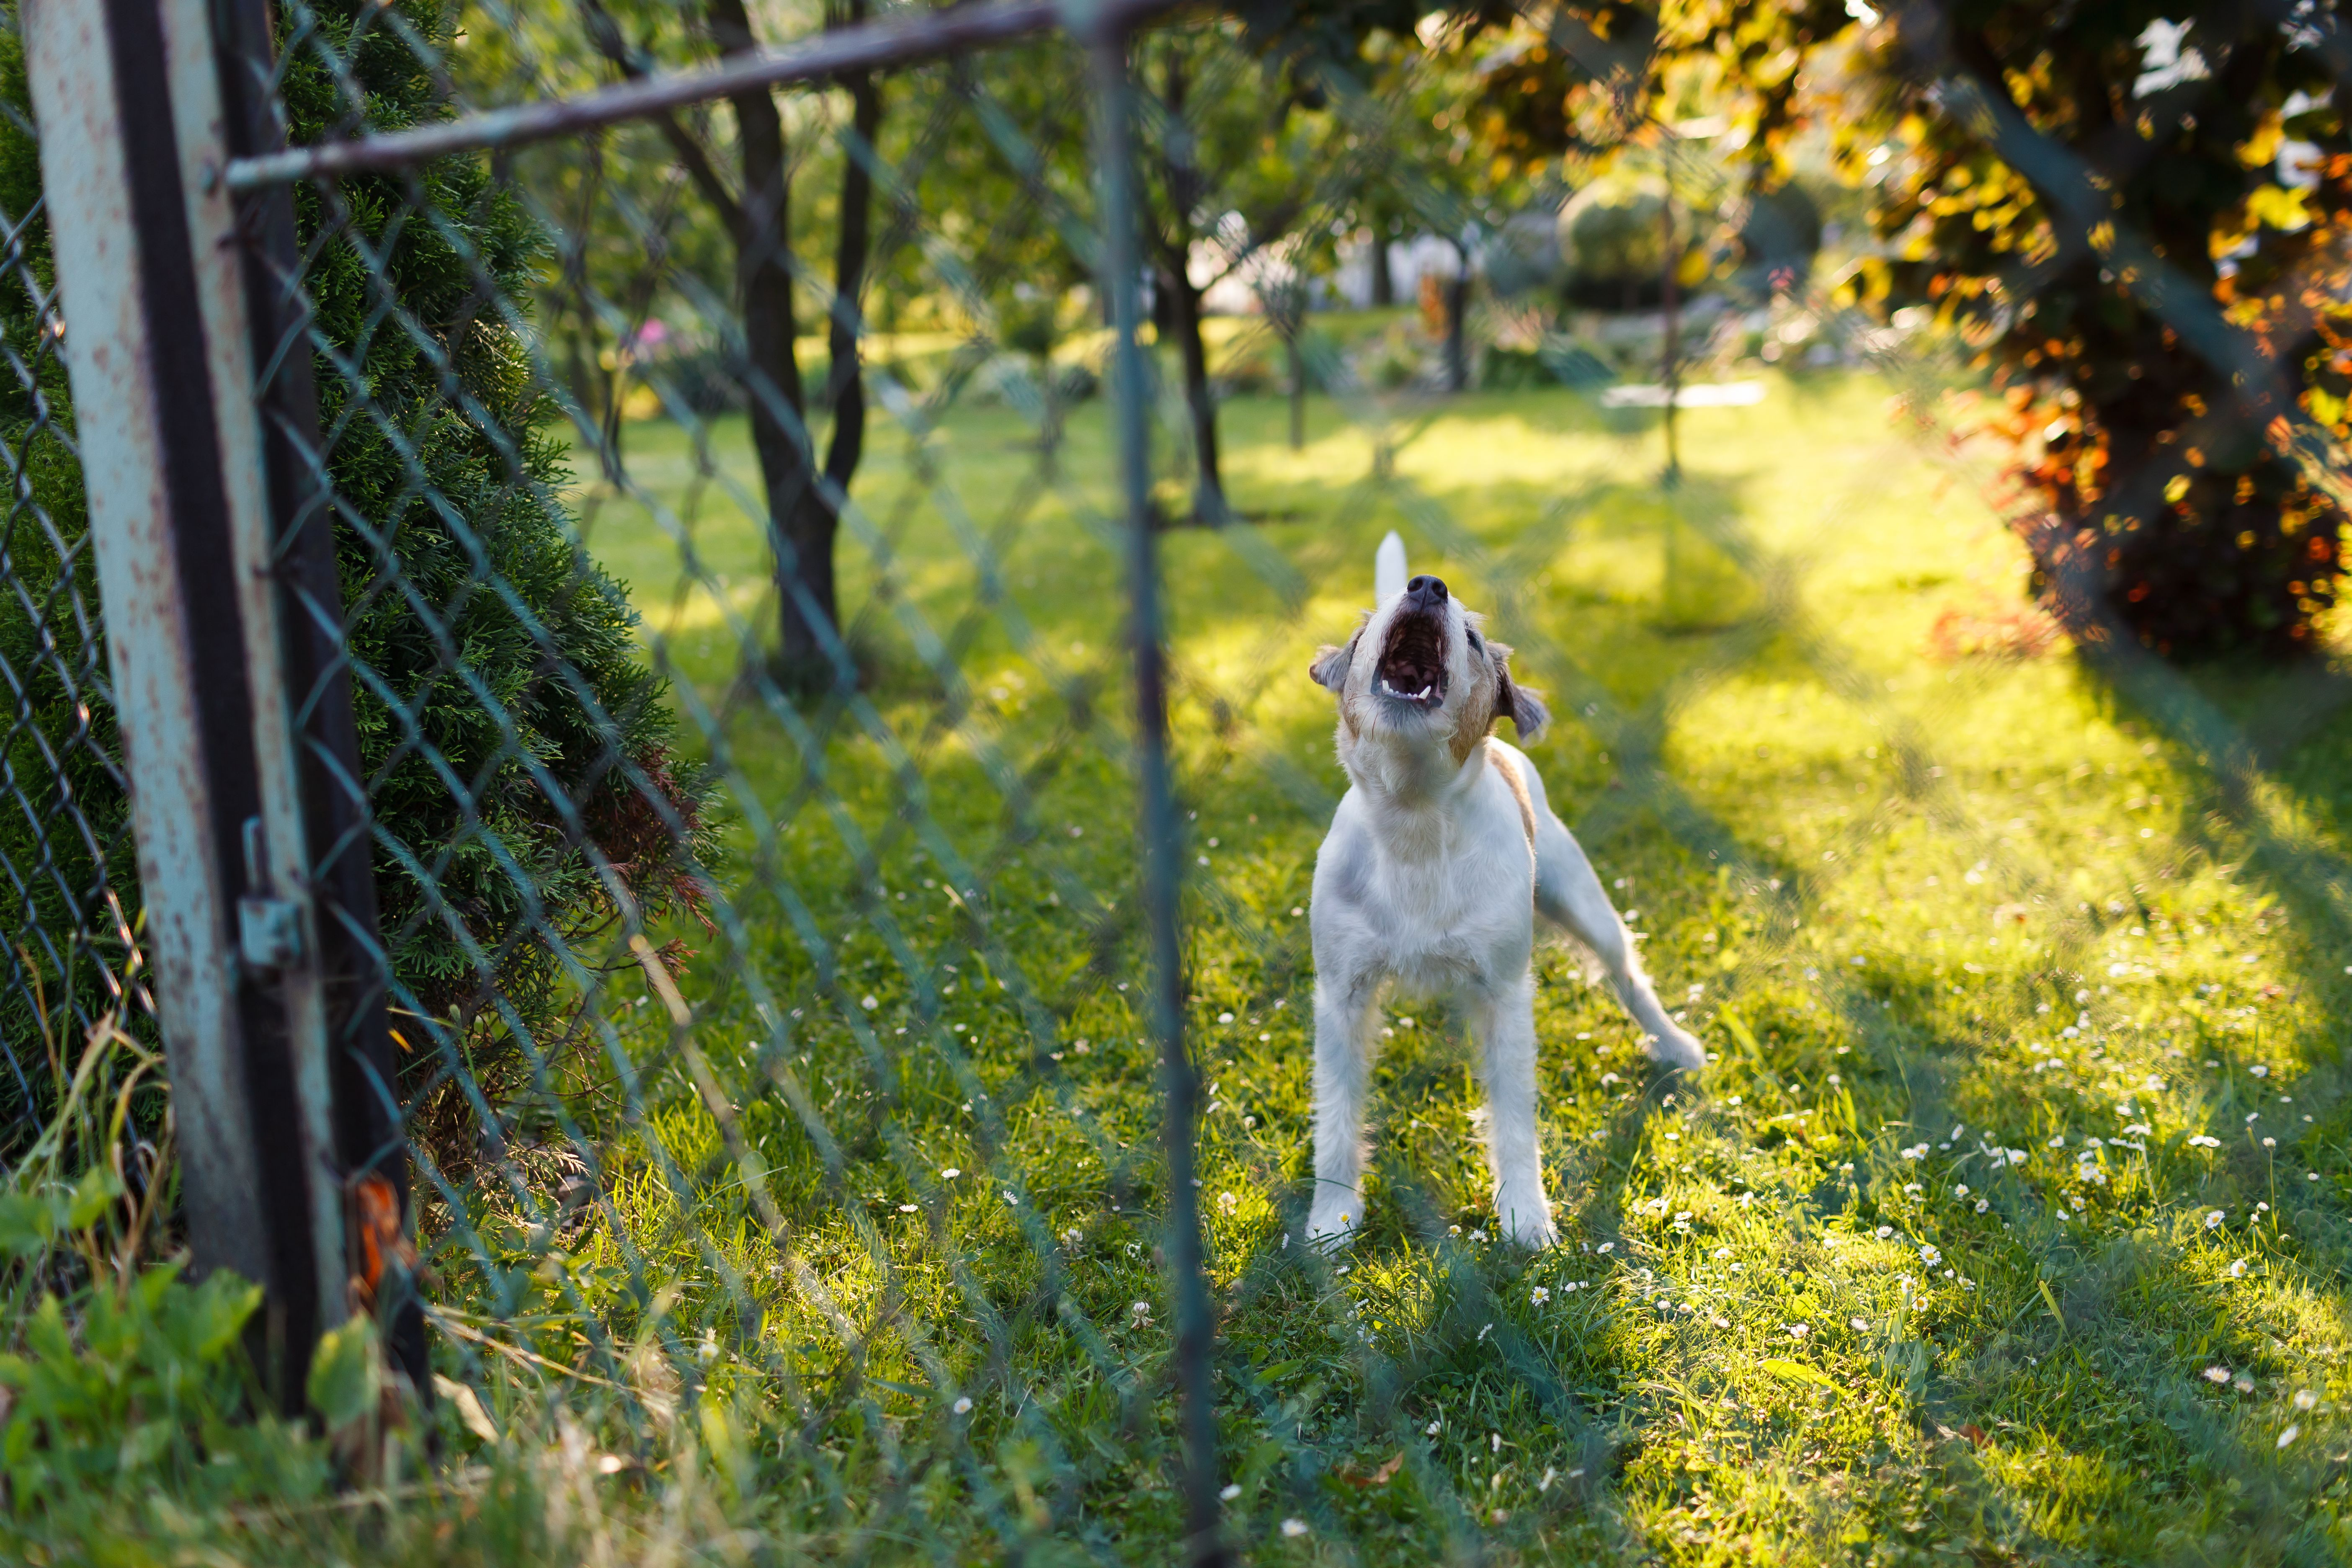 Dog barking behind chain link fence